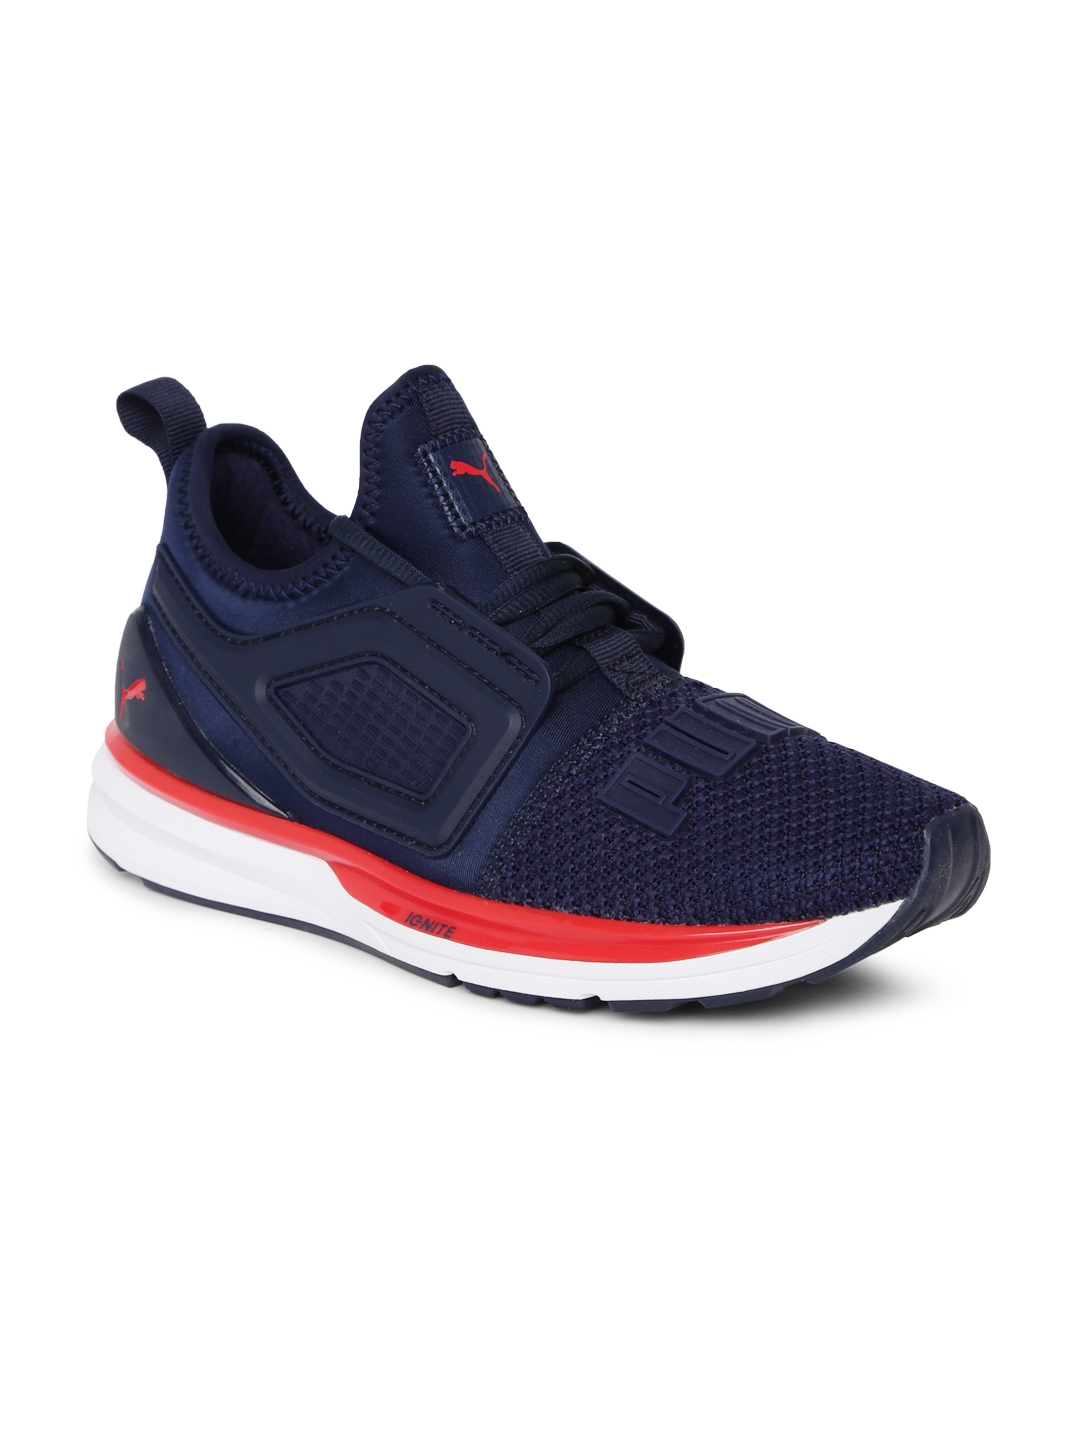 uk availability fb366 b7f43 Puma Kids Navy Blue IGNITE Limitless 2 Jr Running Shoes